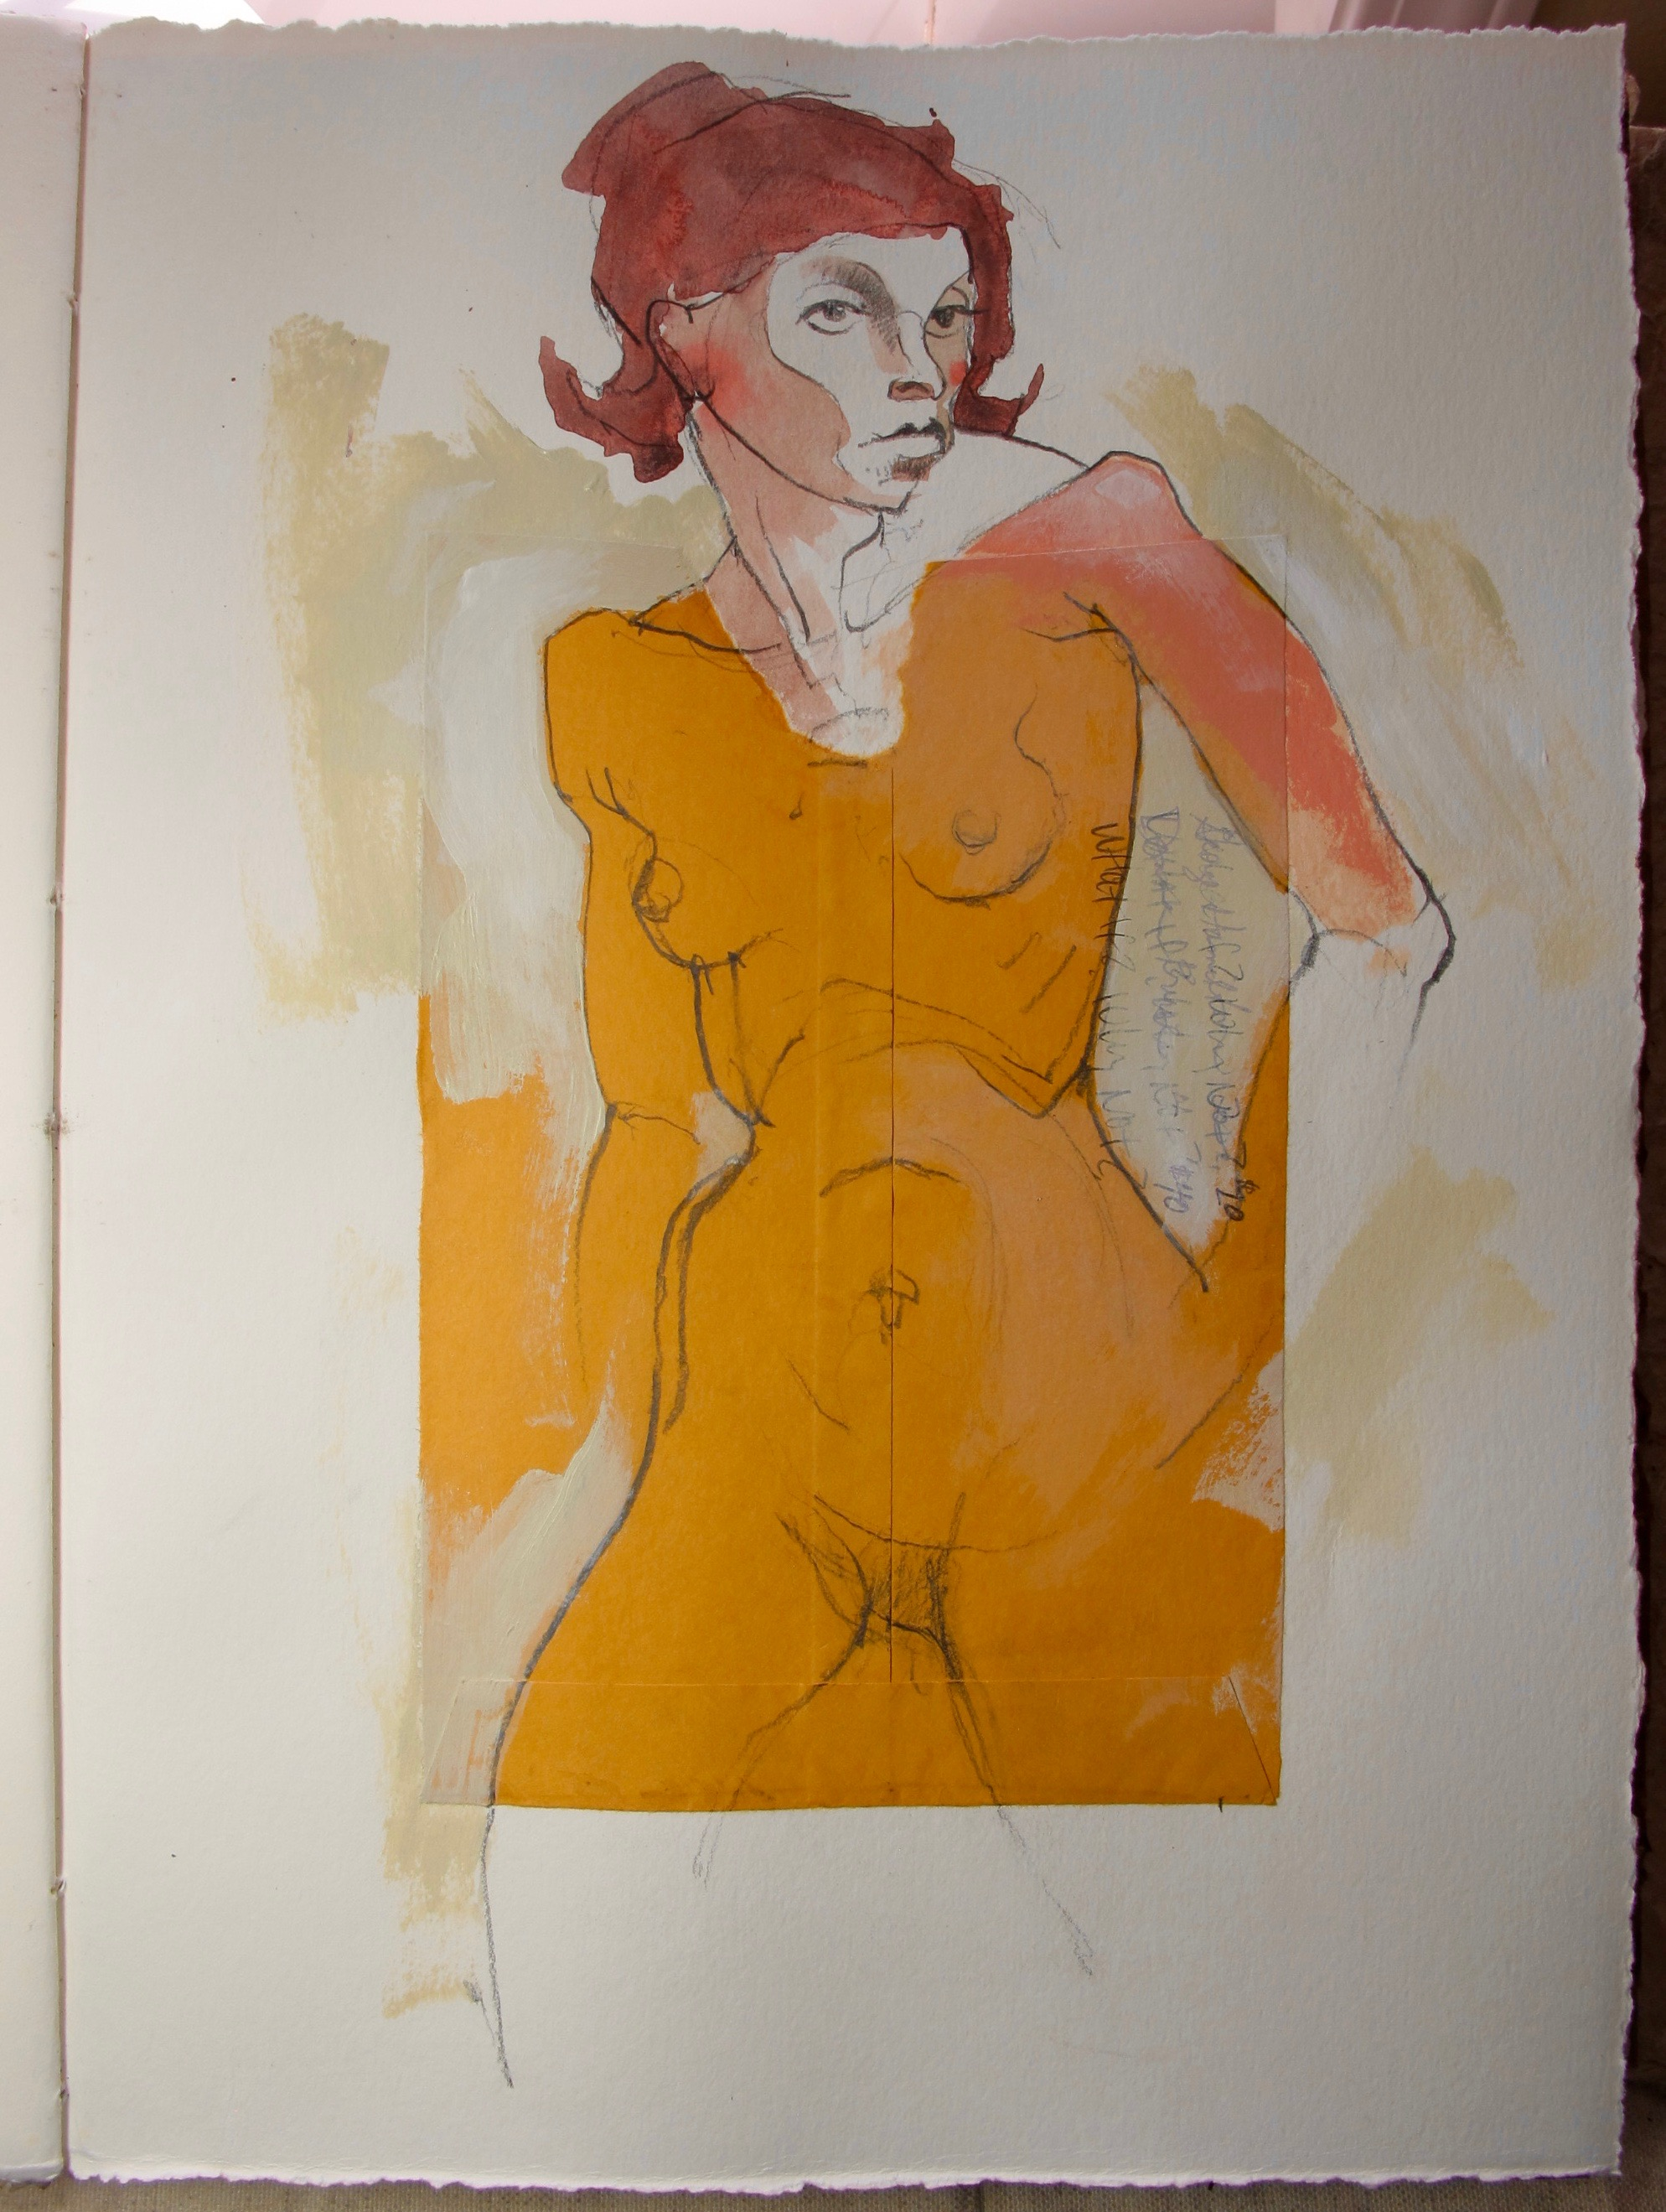 """Sketch from my current sketchbook project, 15""""x 11"""", mixed media on paper, Copyright 2016 David Limrite"""